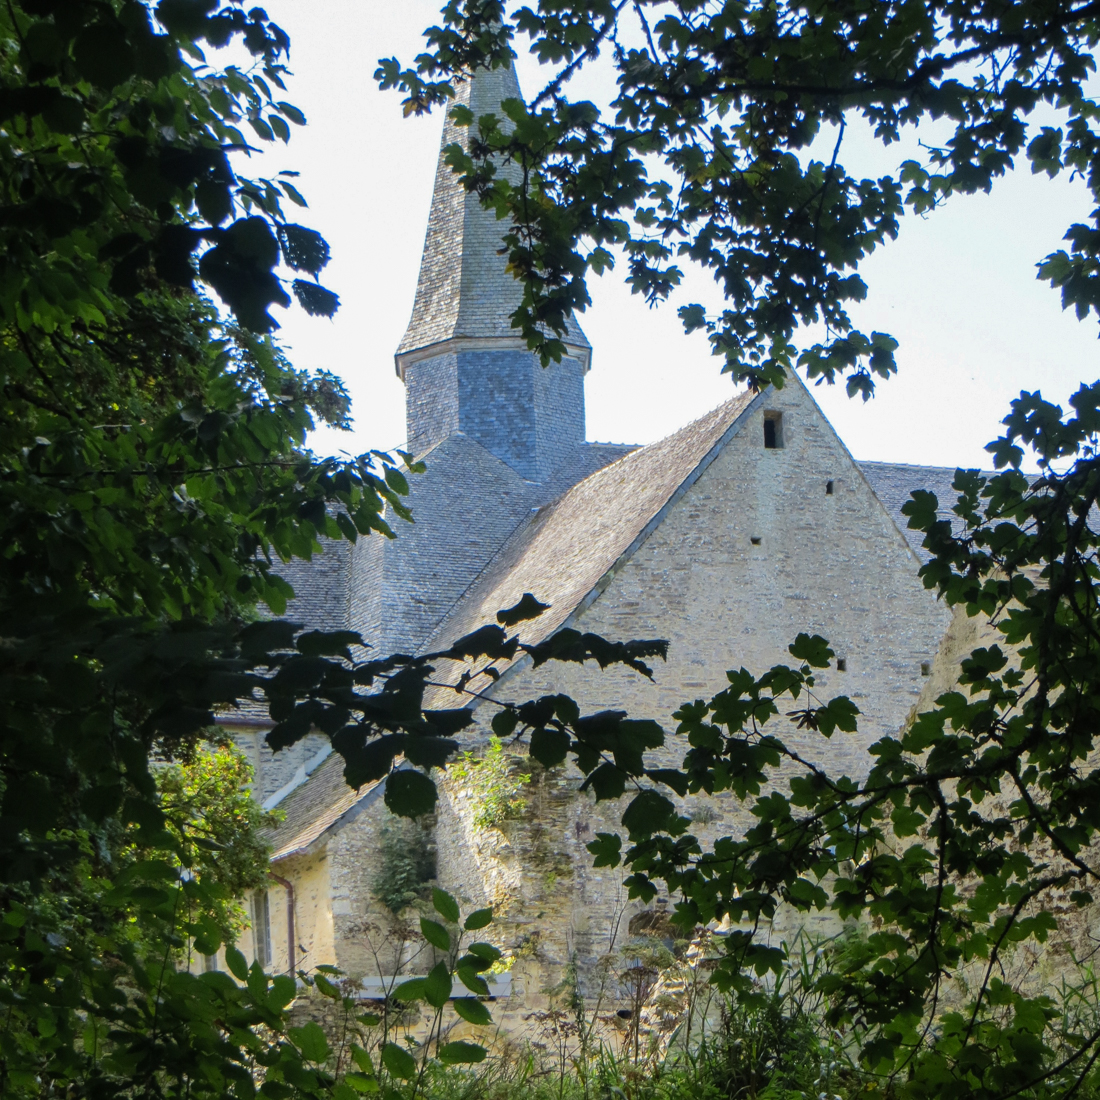 16-9-23-walk-from-le-releq-lr-2440